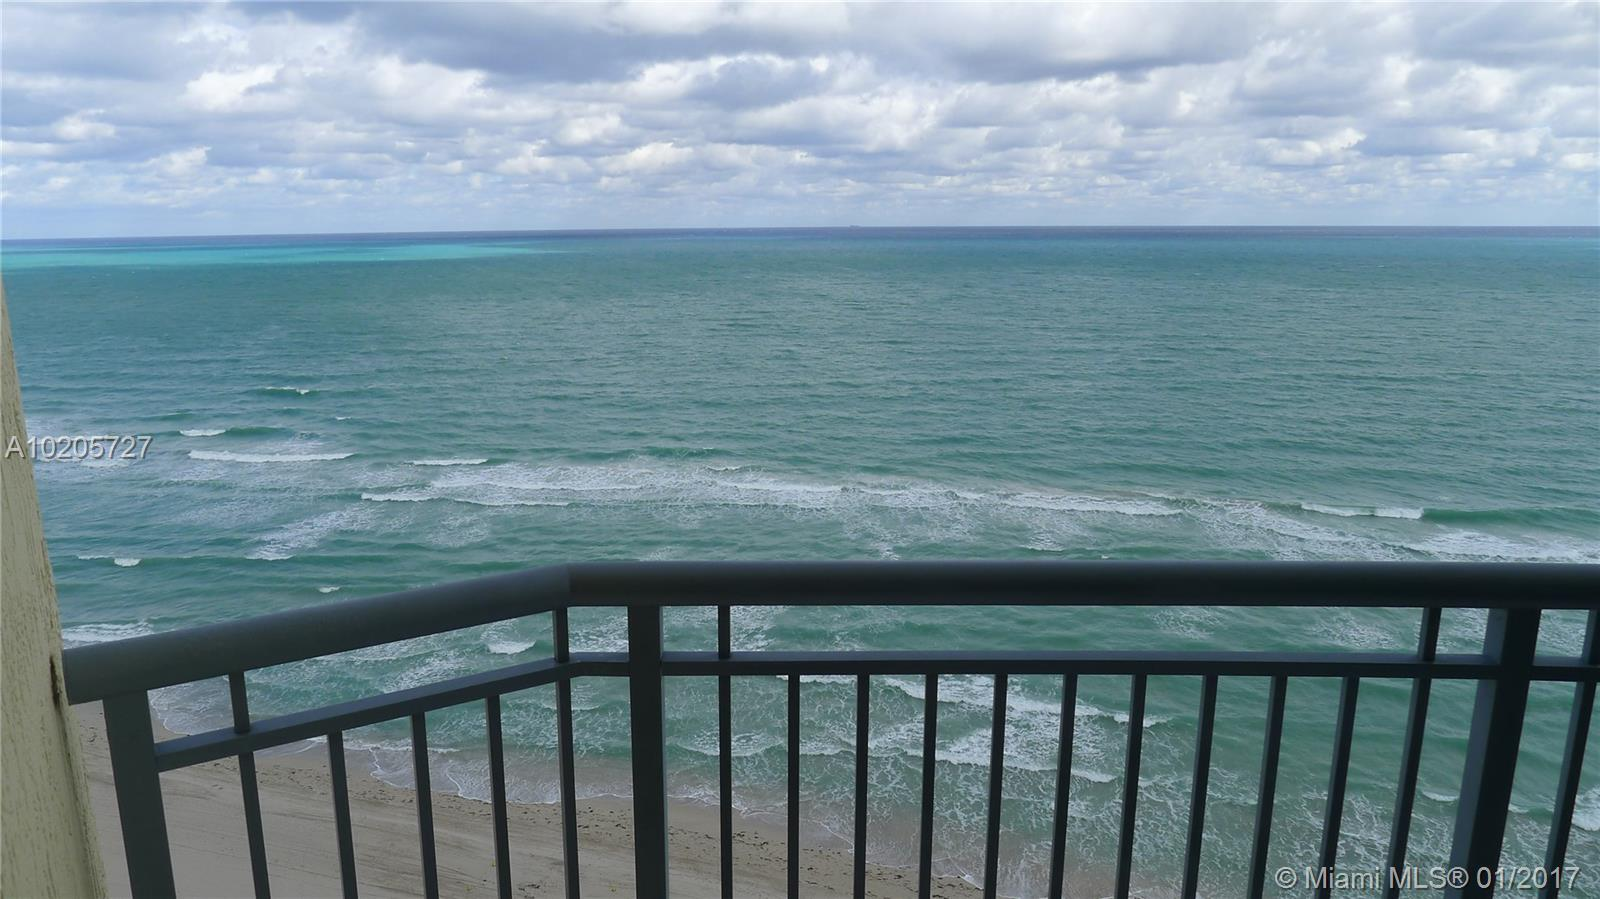 17375 Collins Ave # 2001, Sunny Isles Beach, FL 33160